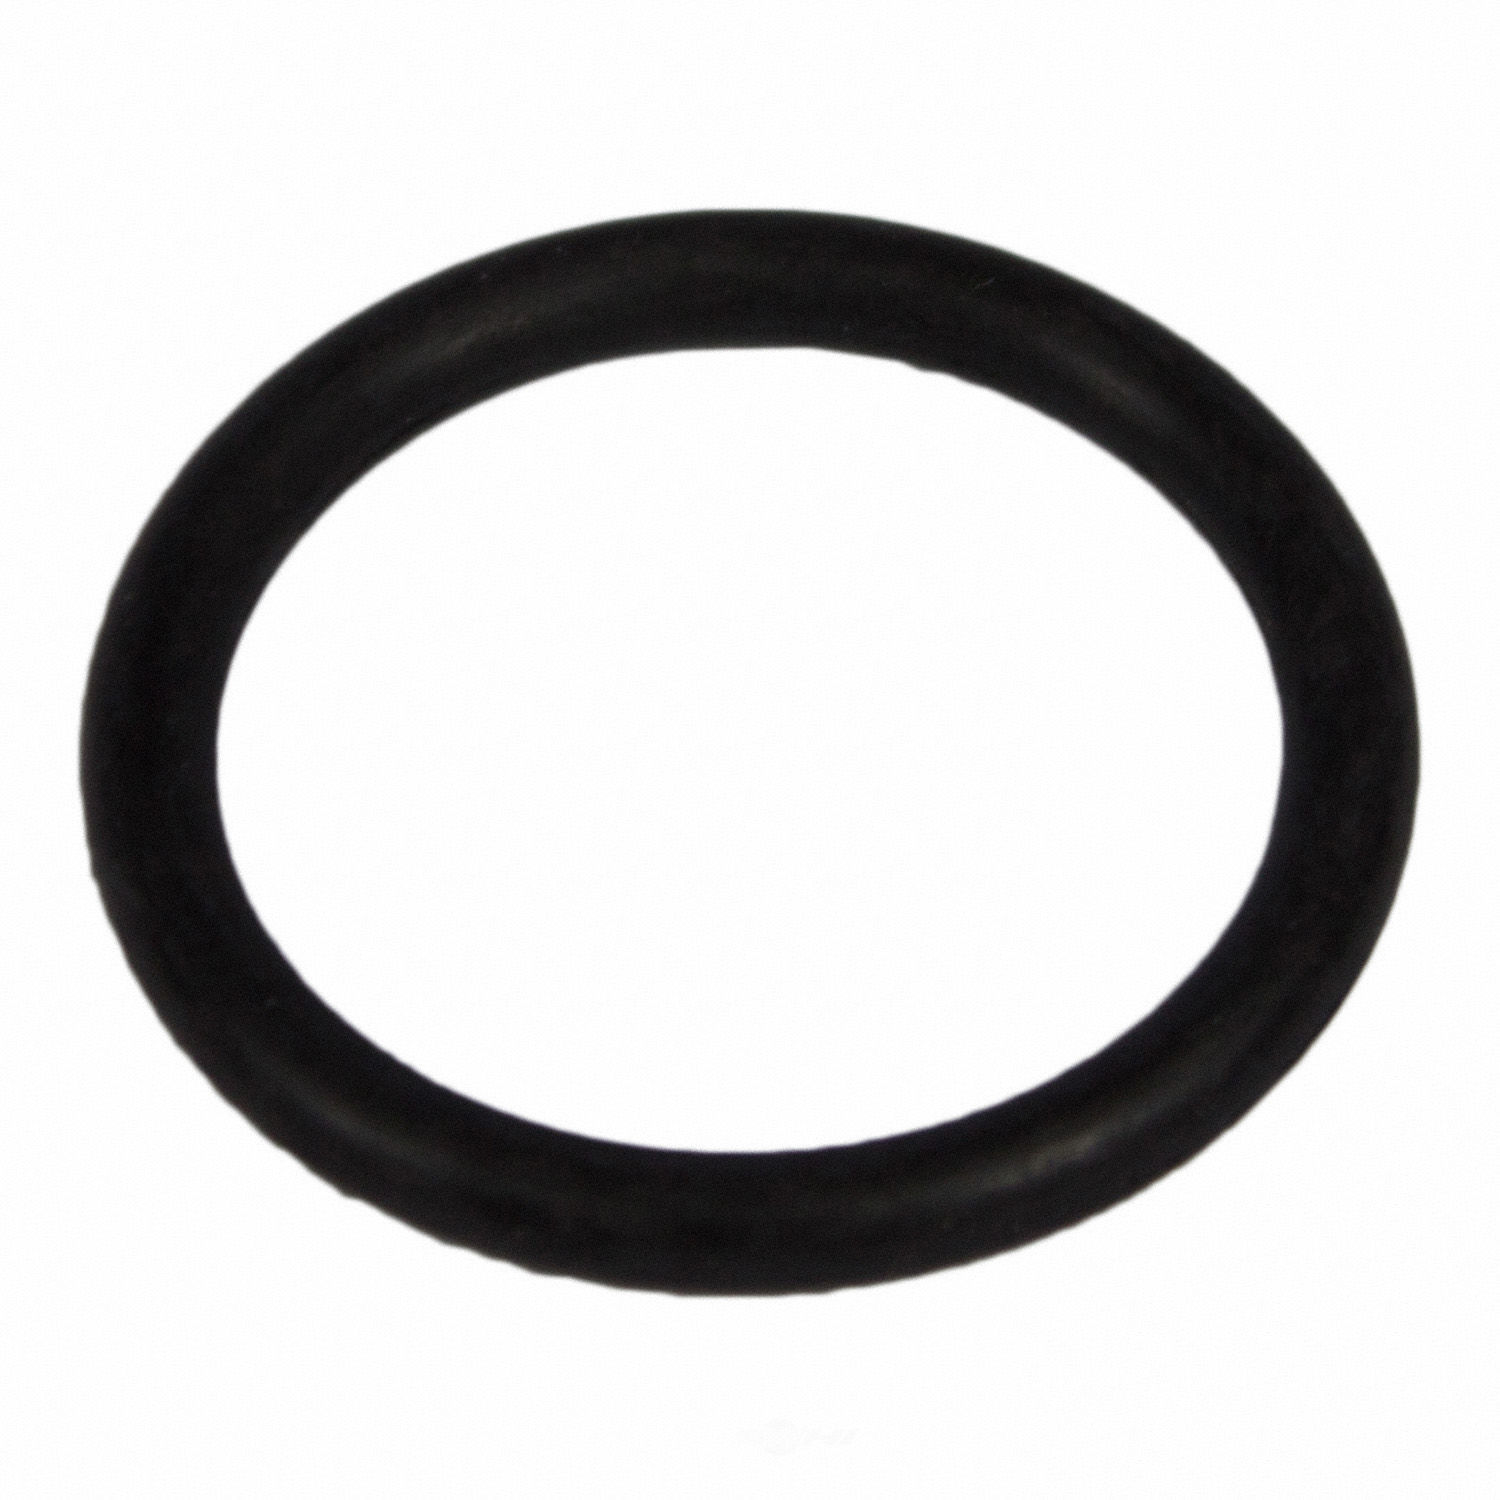 Motorcraft Engine Coolant Recovery Tank Seal Part Number Rts 1072 Autobarn Replacement Parts Catalog Autobarn Net